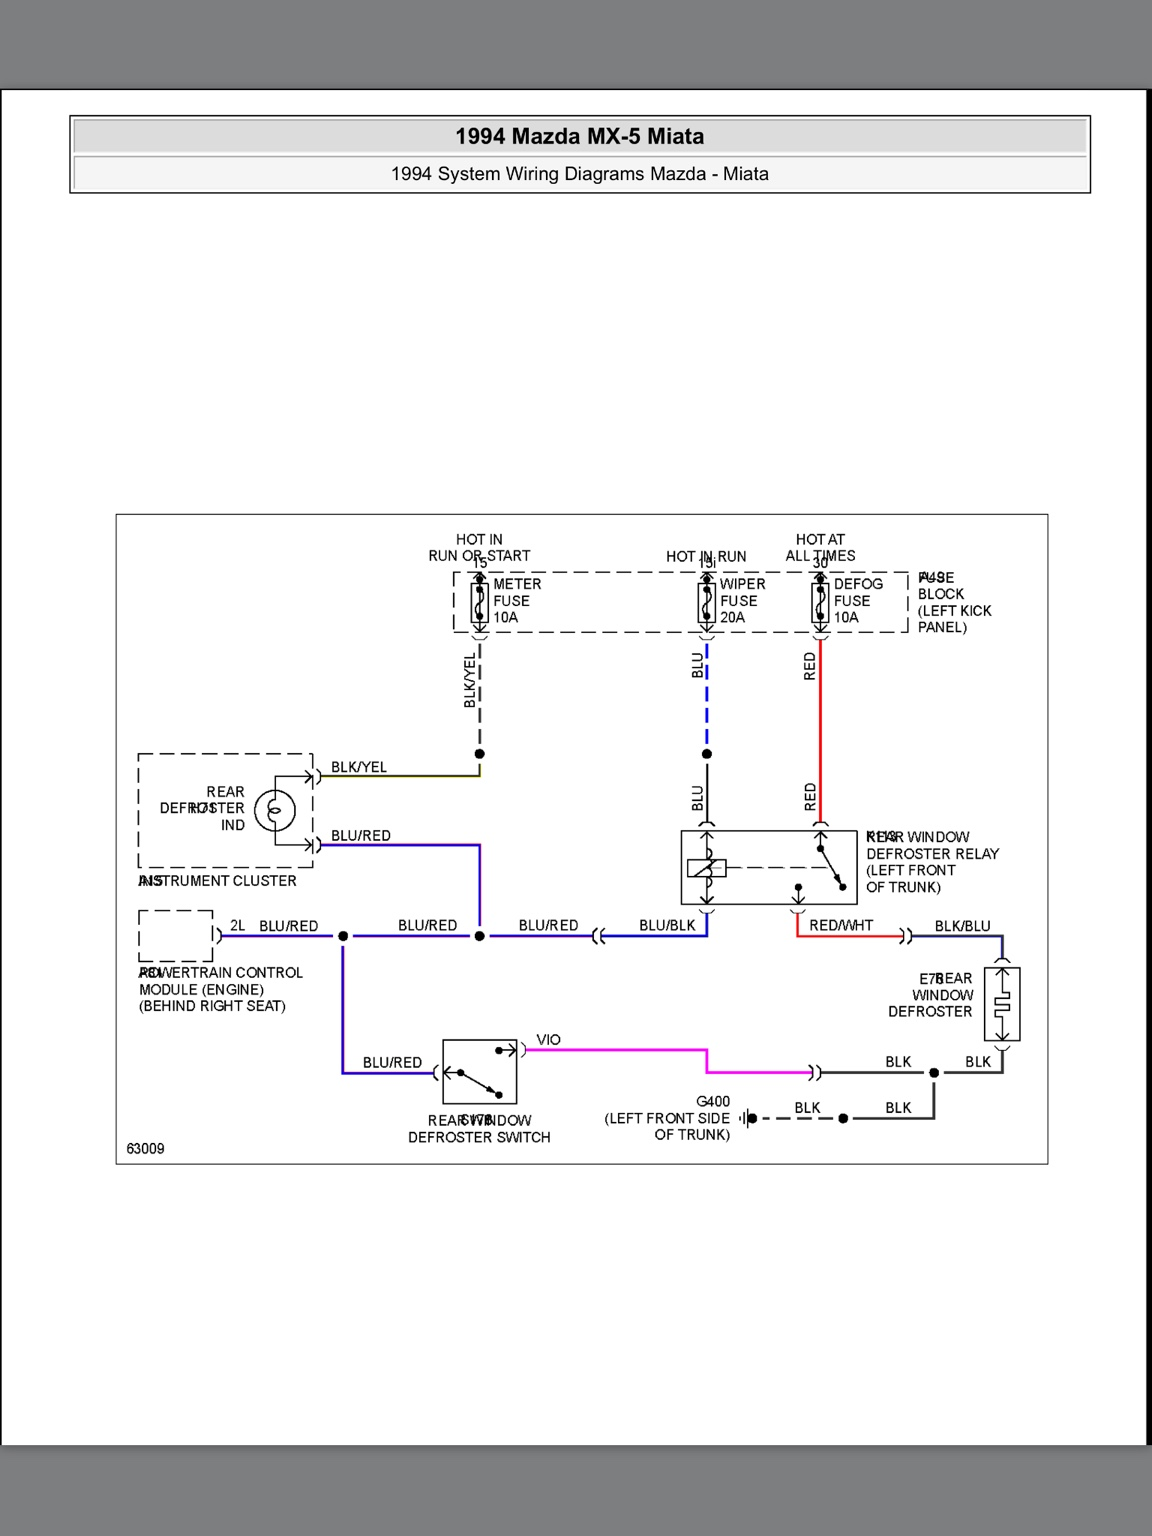 hight resolution of 1990 miata wiring diagrams wiring library mazda mx 5 nd mazda mx5 mk1 fuse box diagram